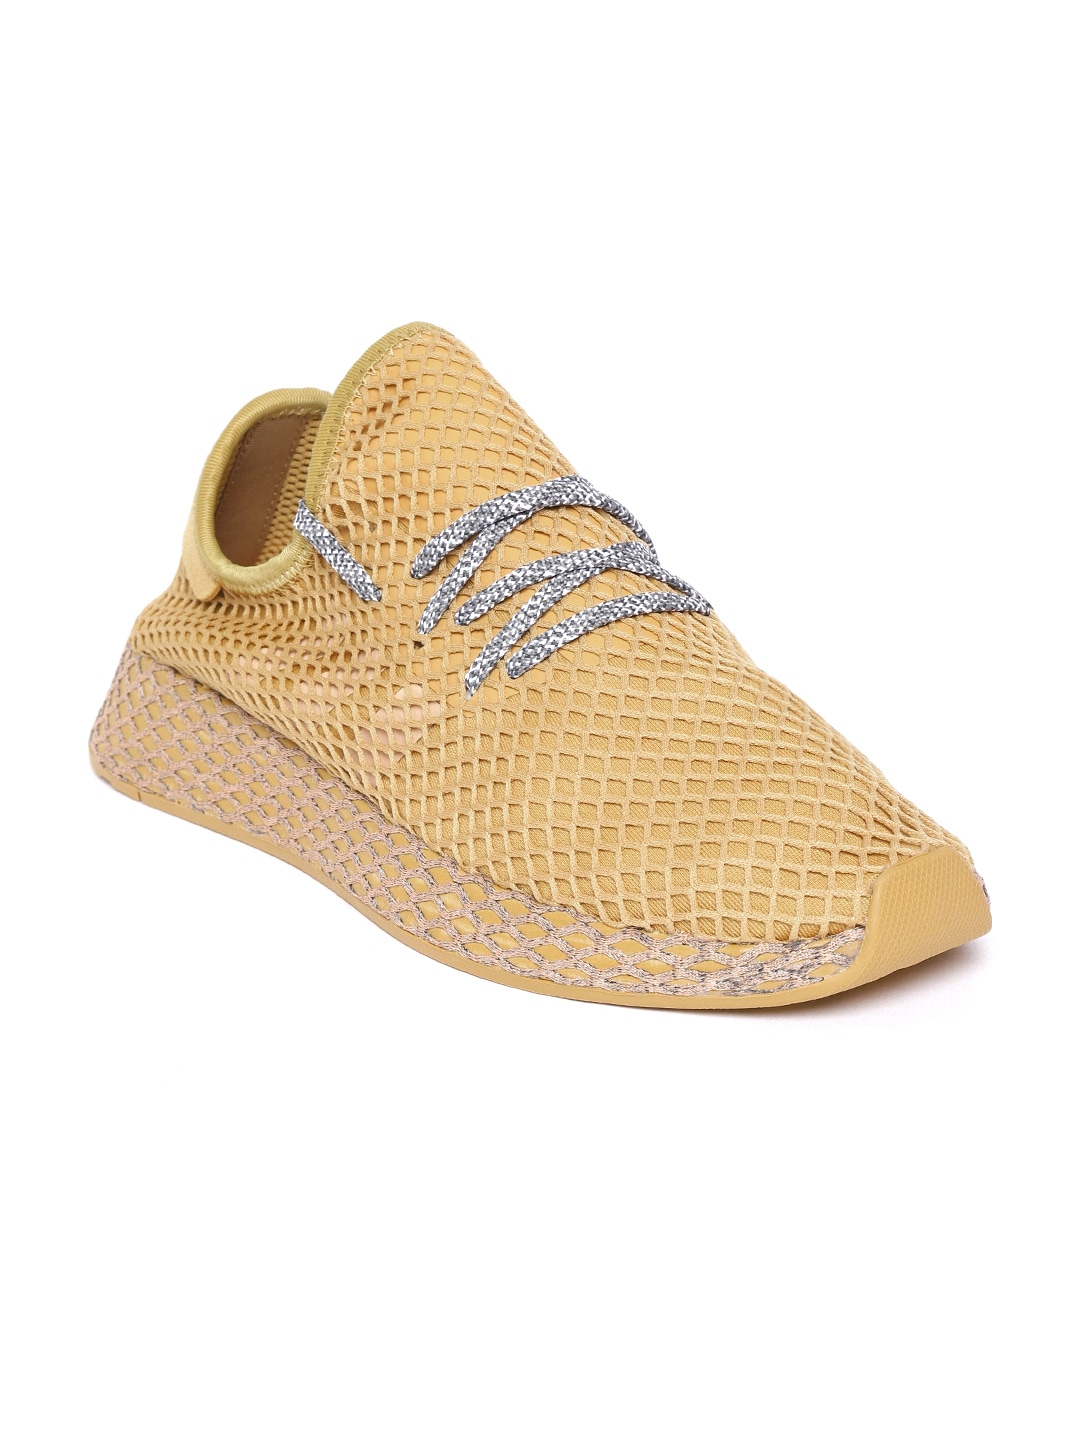 0f27ca1fe29f4 Adidas Originals - Buy Adidas Originals Products Online